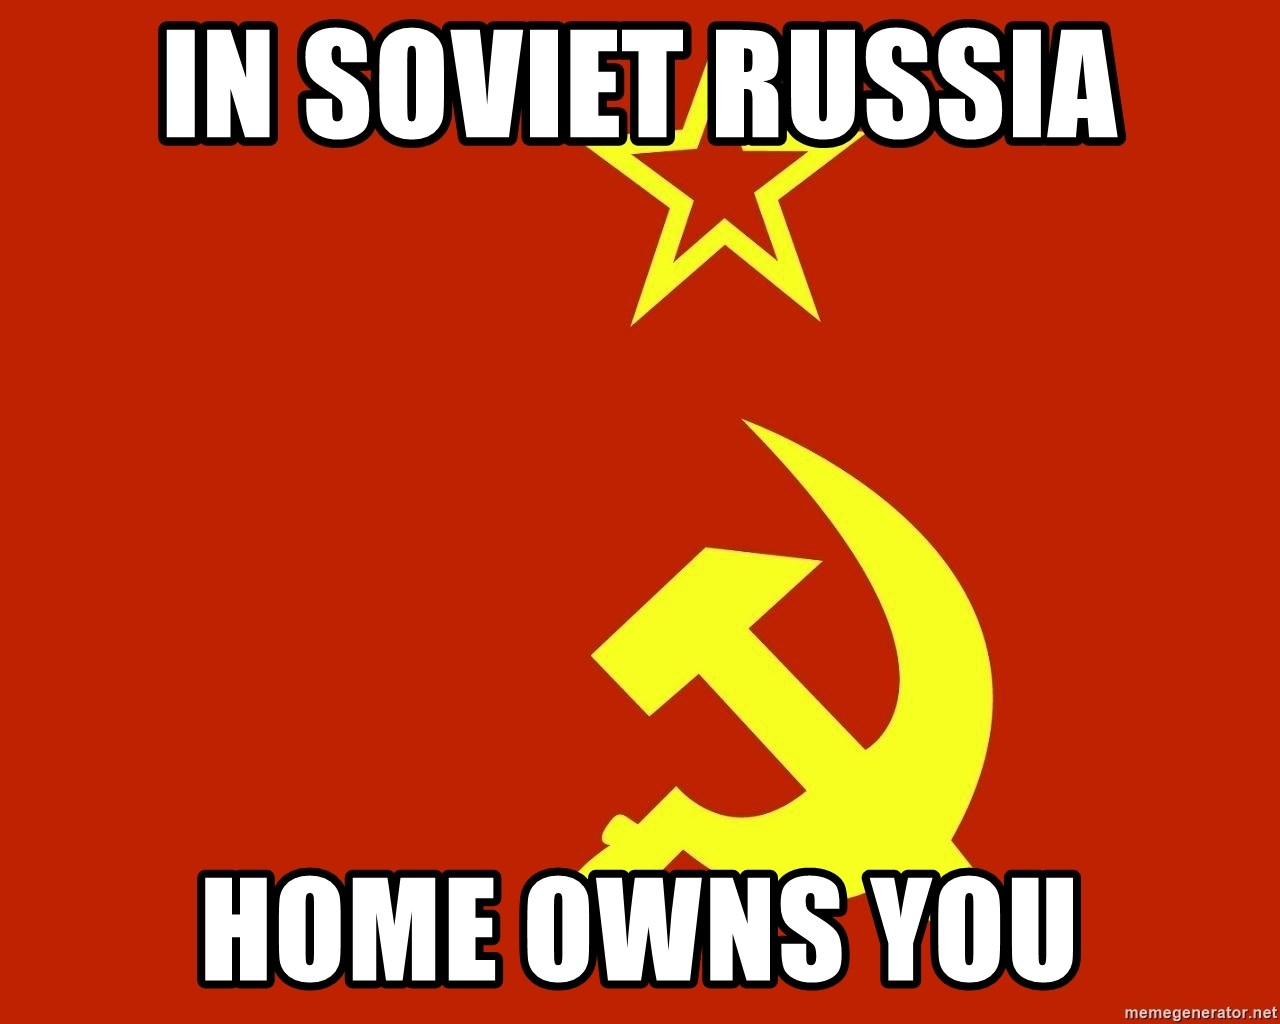 In Soviet Russia - In Soviet Russia HOme owns YOu